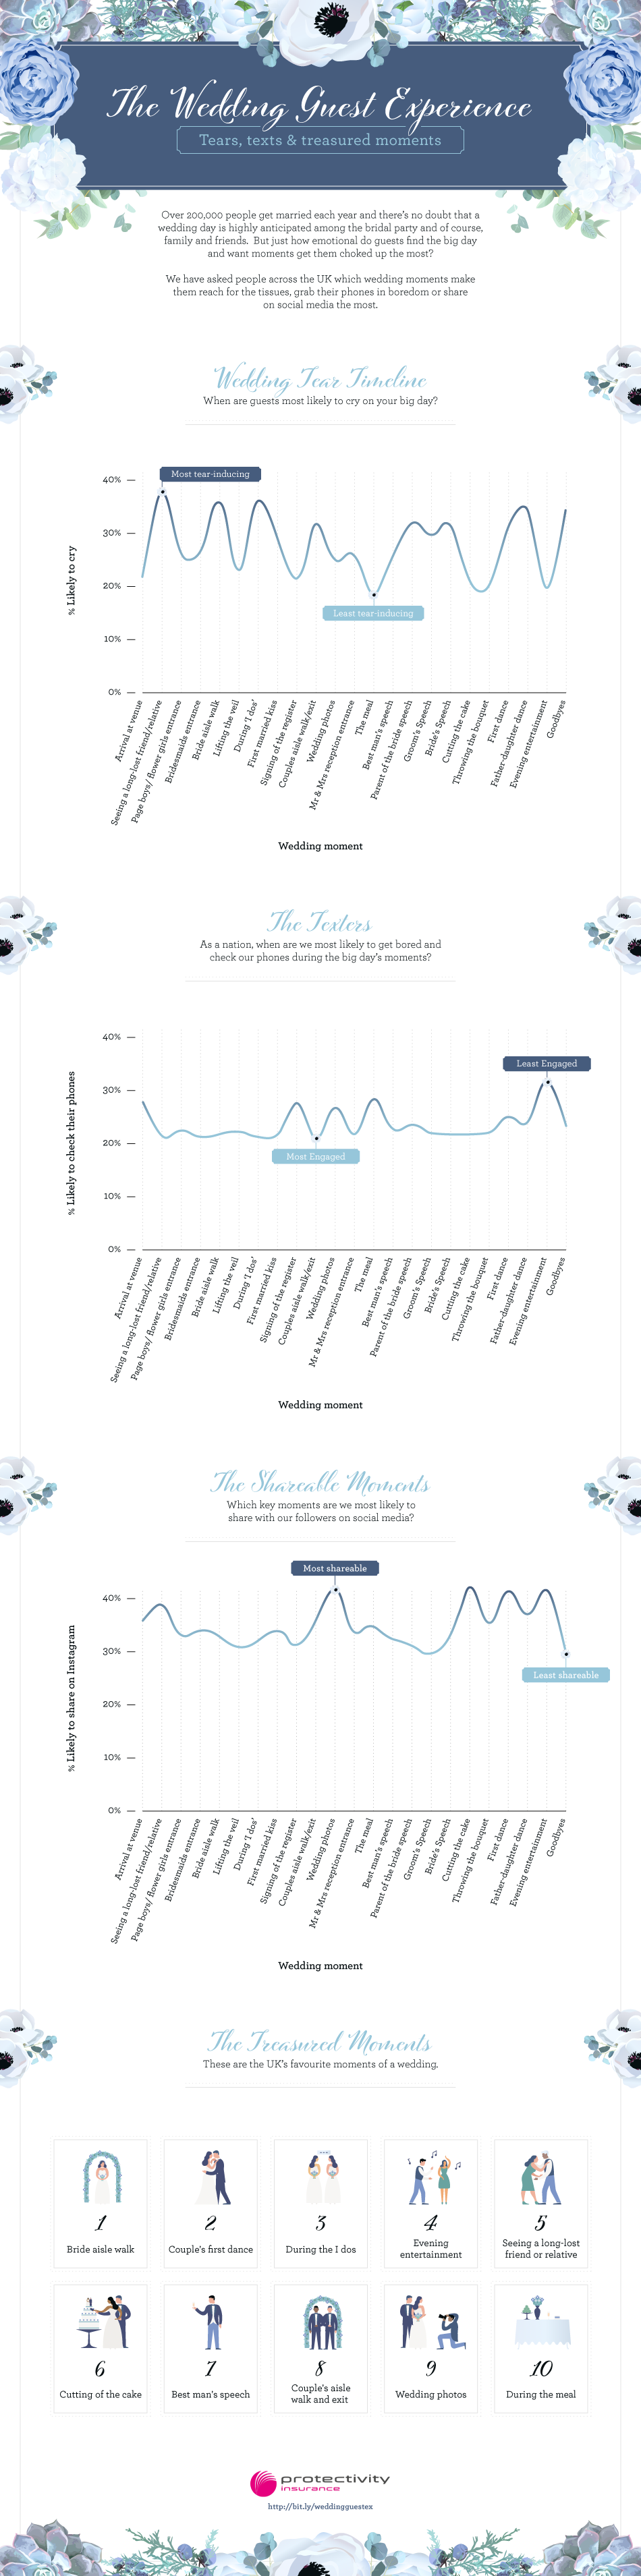 Wedding Tear-timeline Infographic